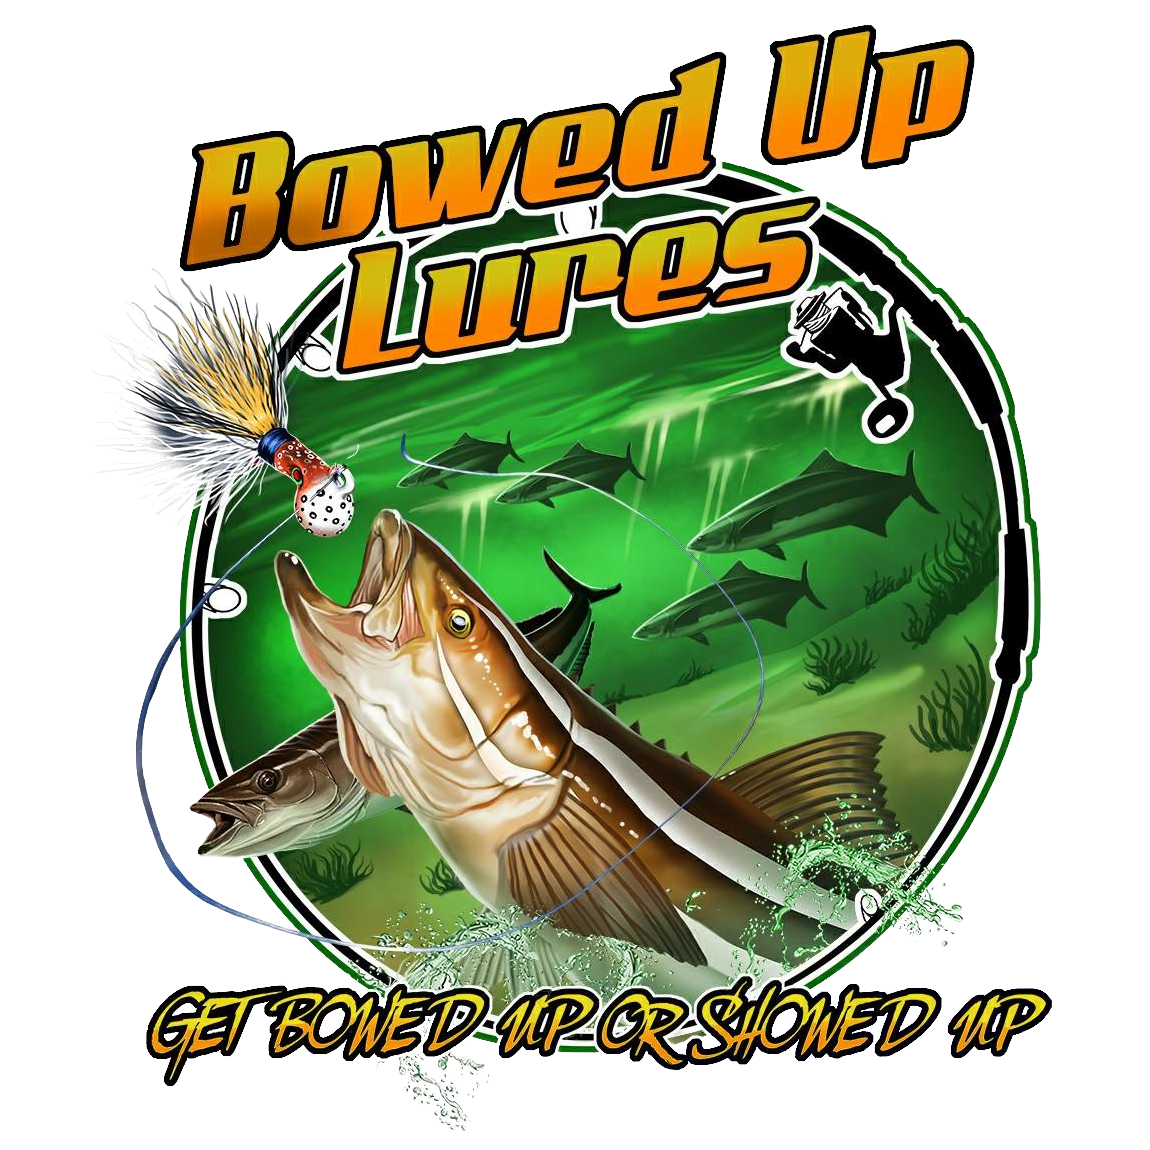 Bowed Up Lures